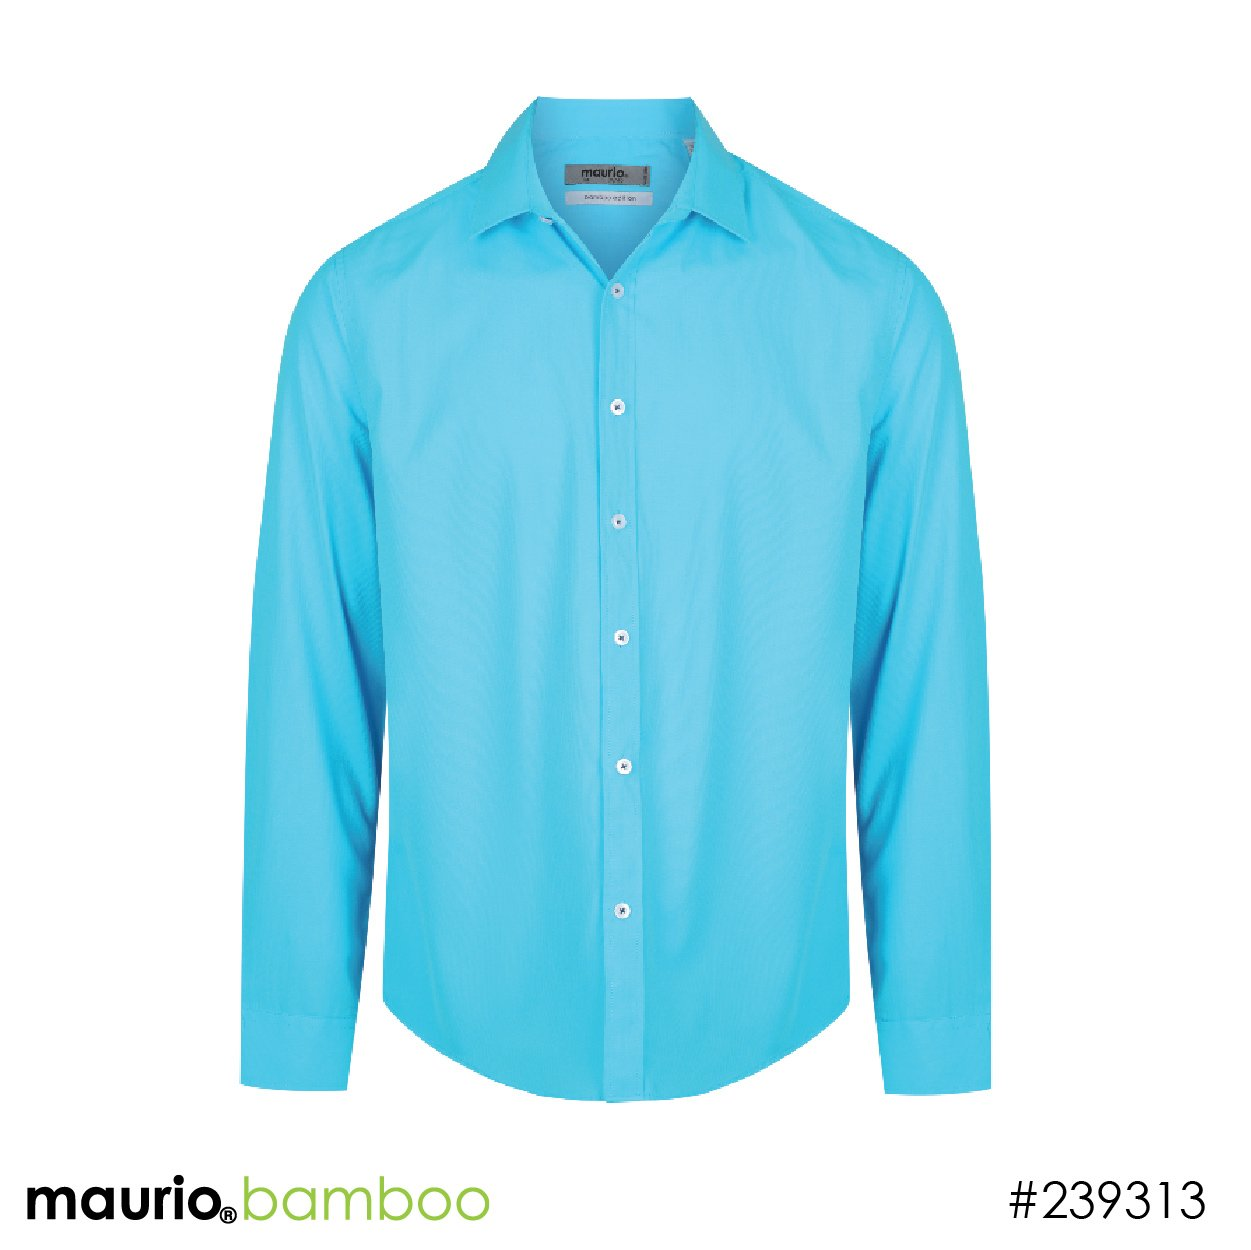 Dress shirt bamboo fabric - aqua